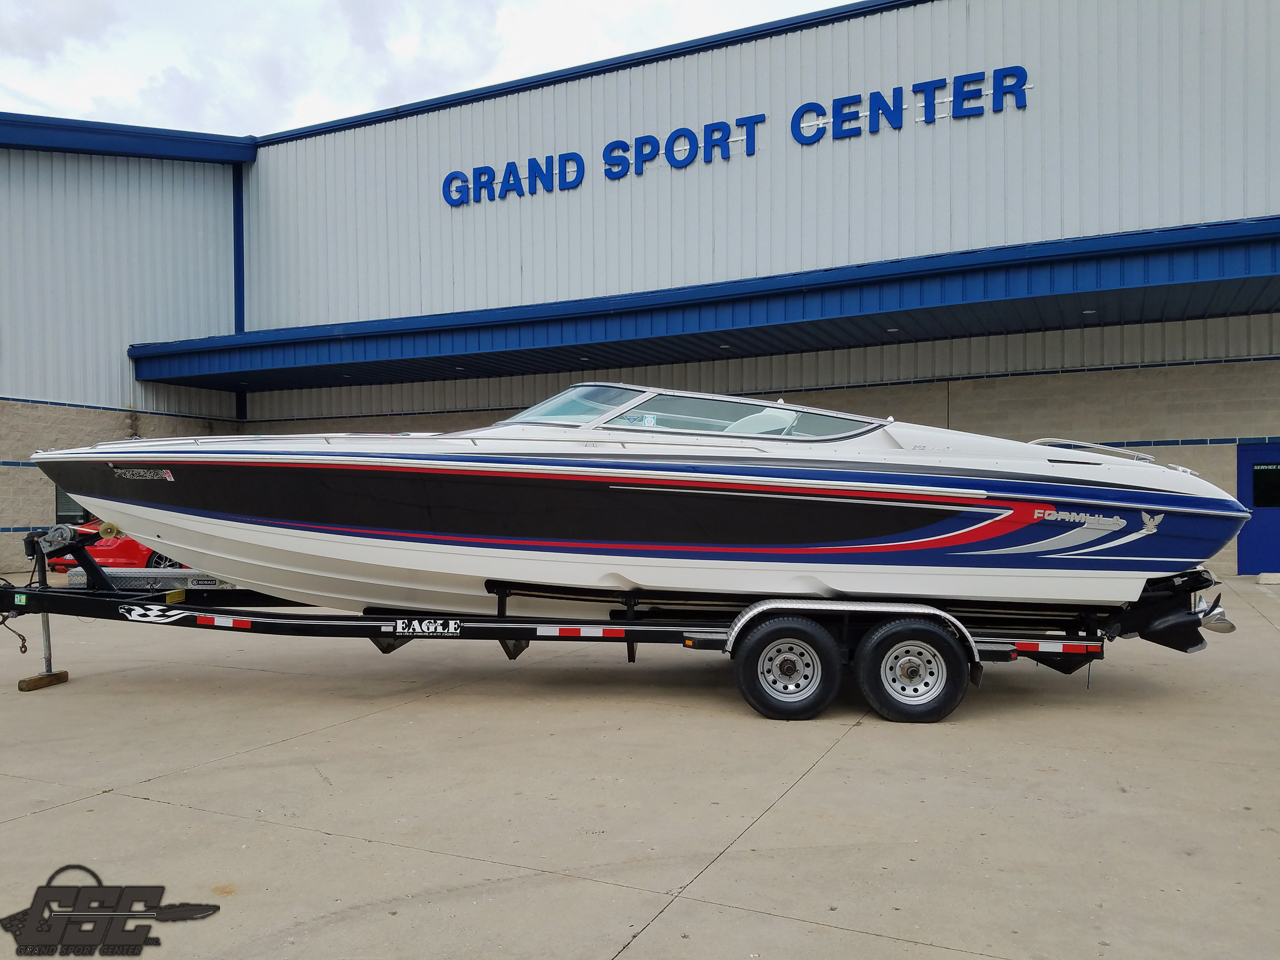 2004 Formula 292 Fastech - SOLD IN 24 HRS!